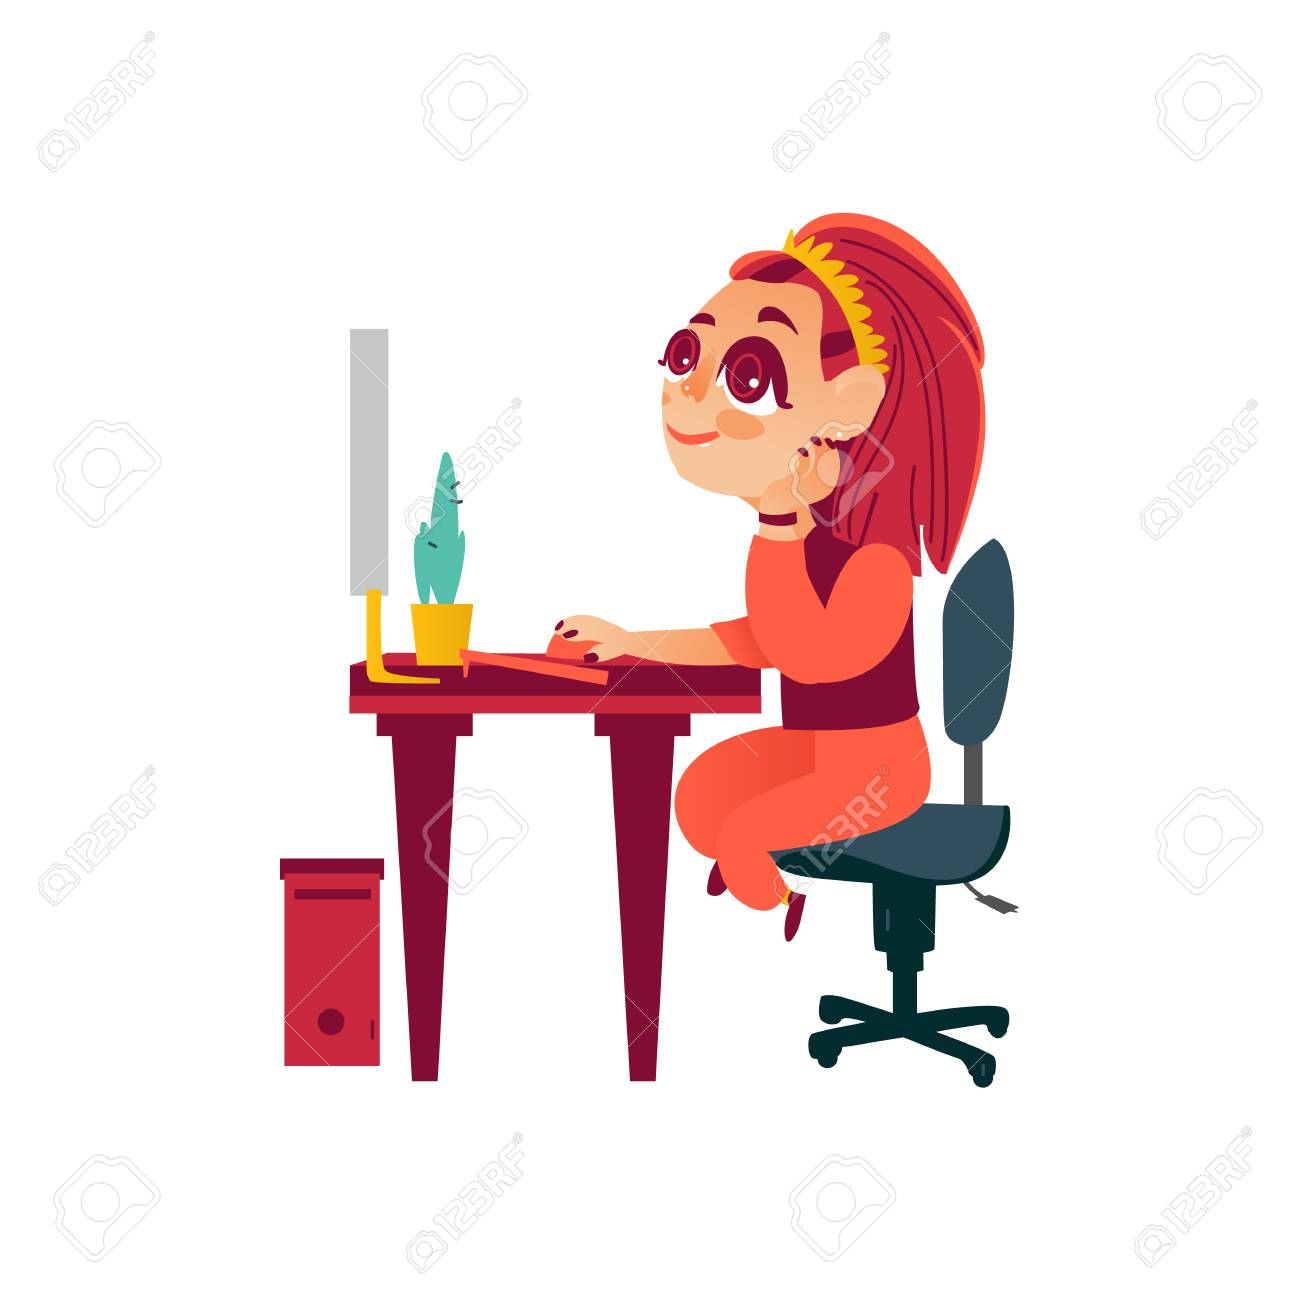 Clipart Funny Computer - ClipArt Best